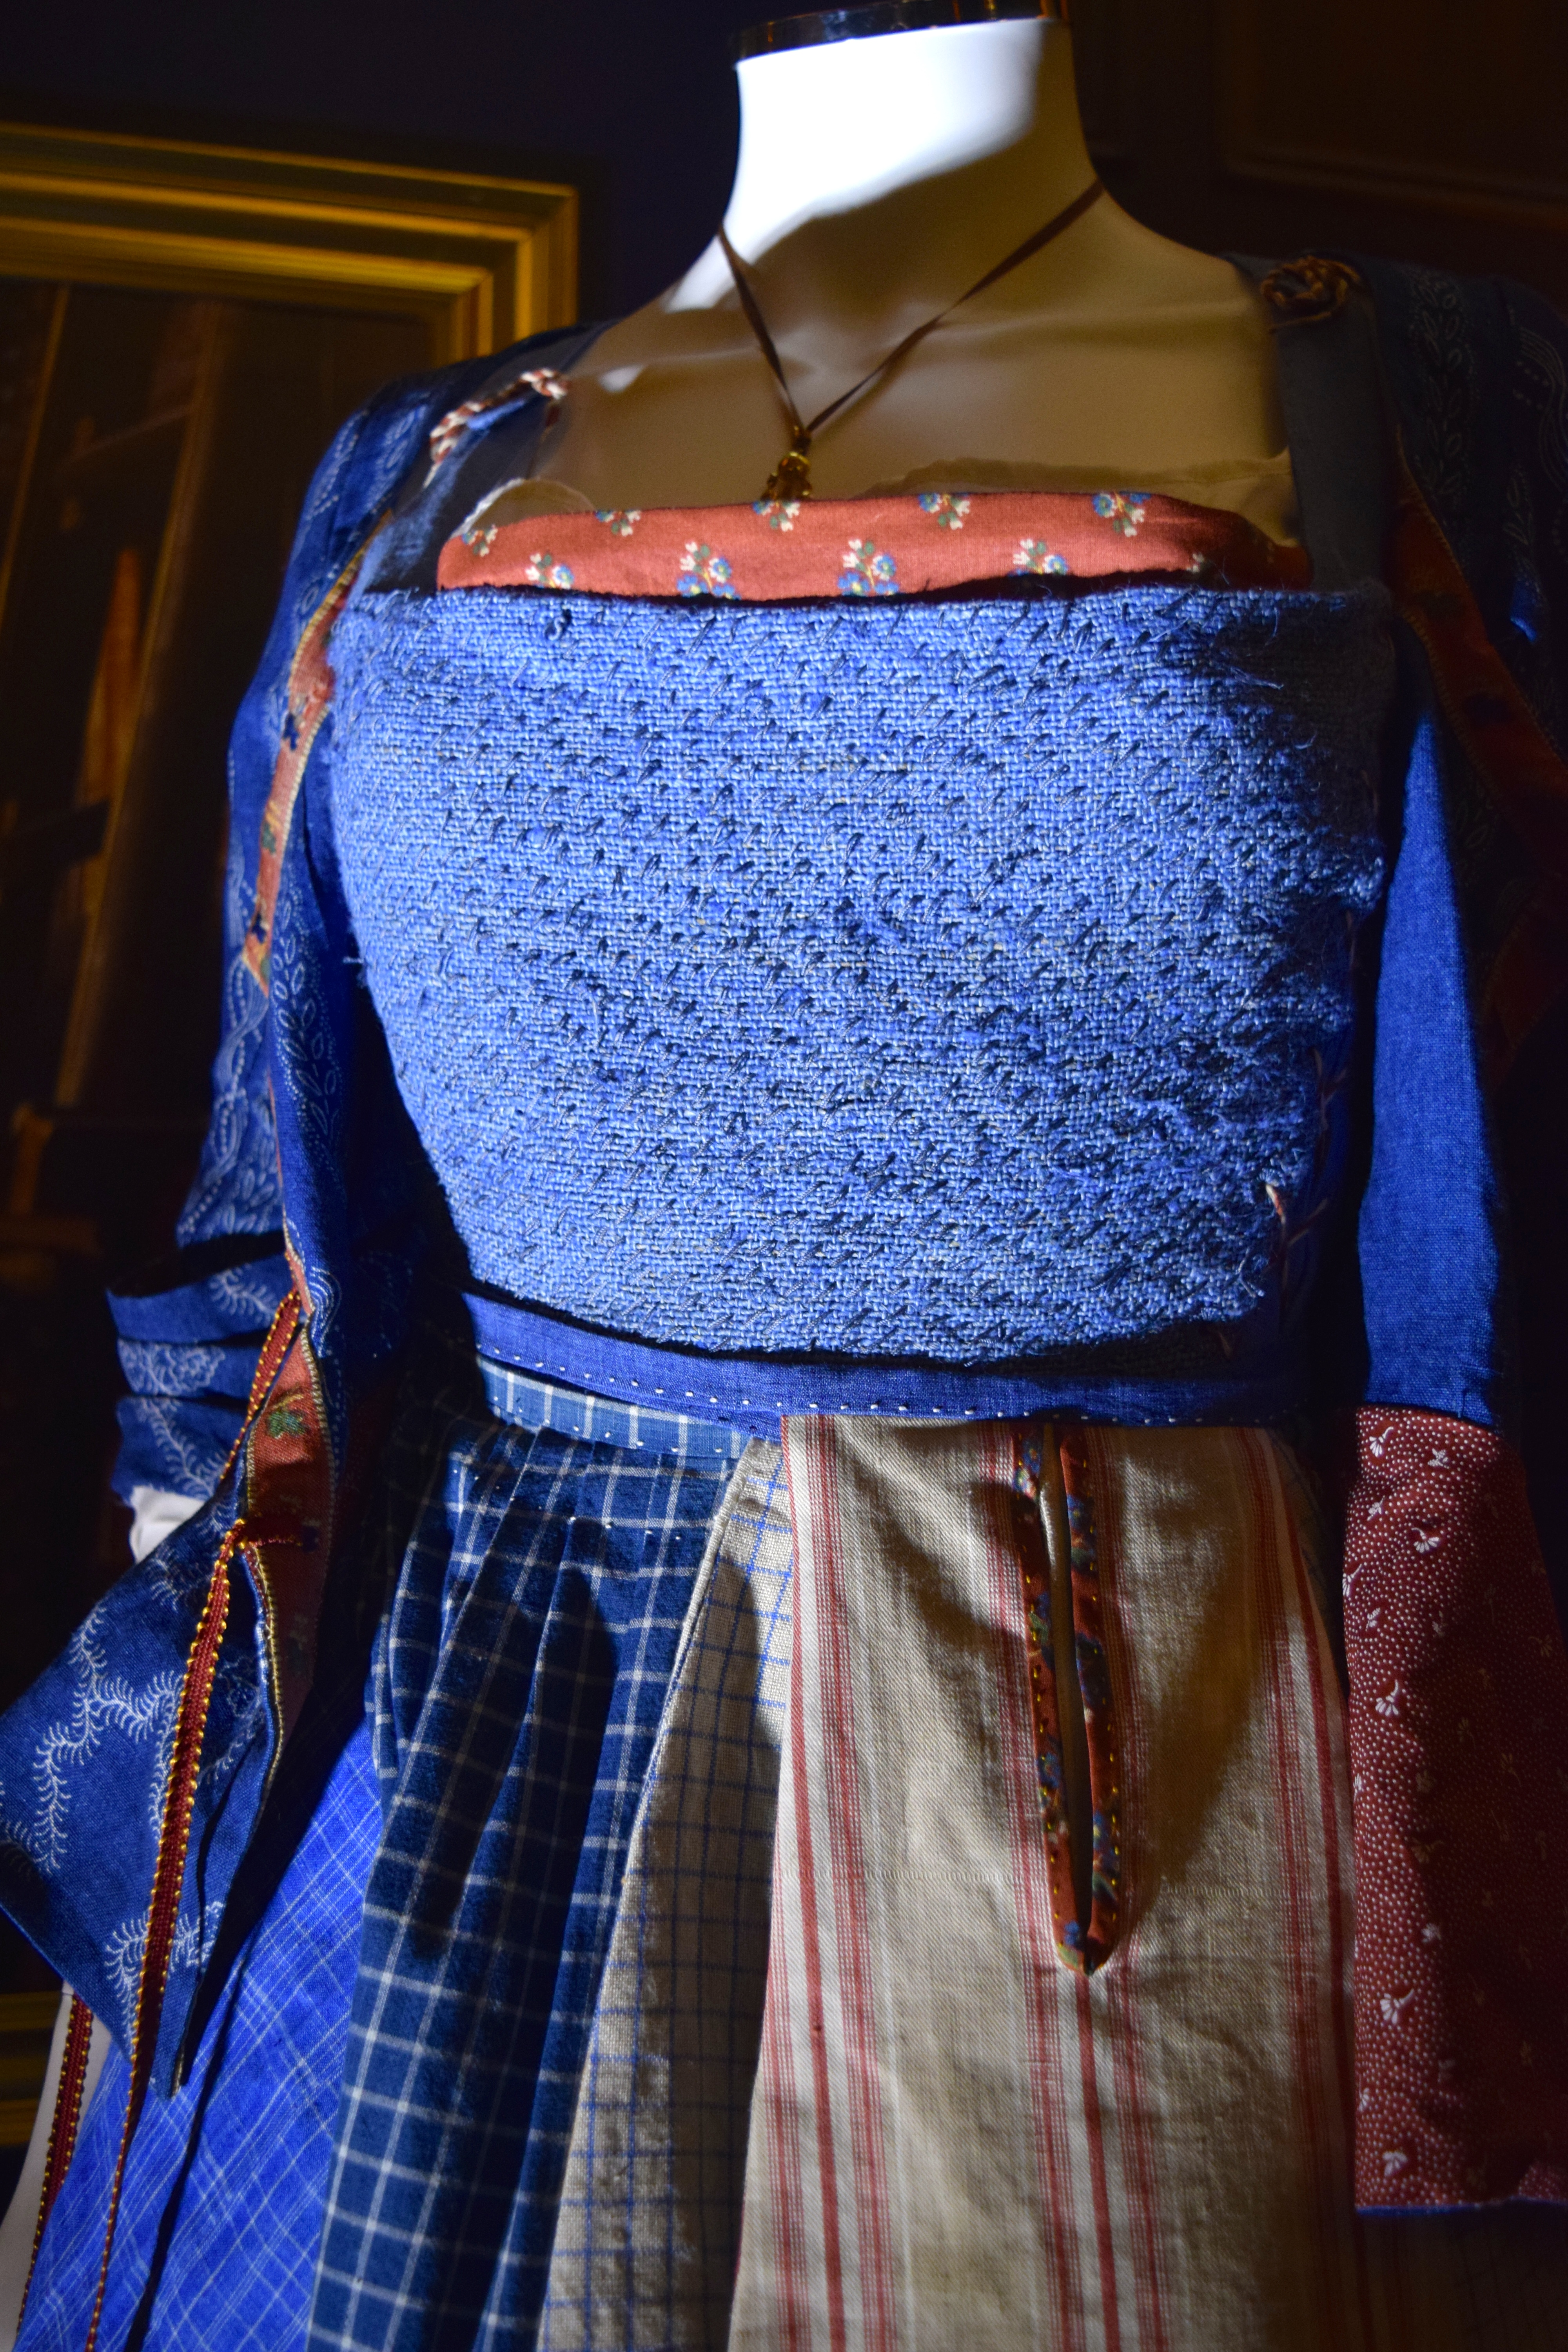 #BeOurGuestTO Beauty and the Beast Exhibit at Casa Loma » beauty-and-the-beast-exhibit-belle-costume-4 & beauty-and-the-beast-exhibit-belle-costume-4 | One Movie Our Views